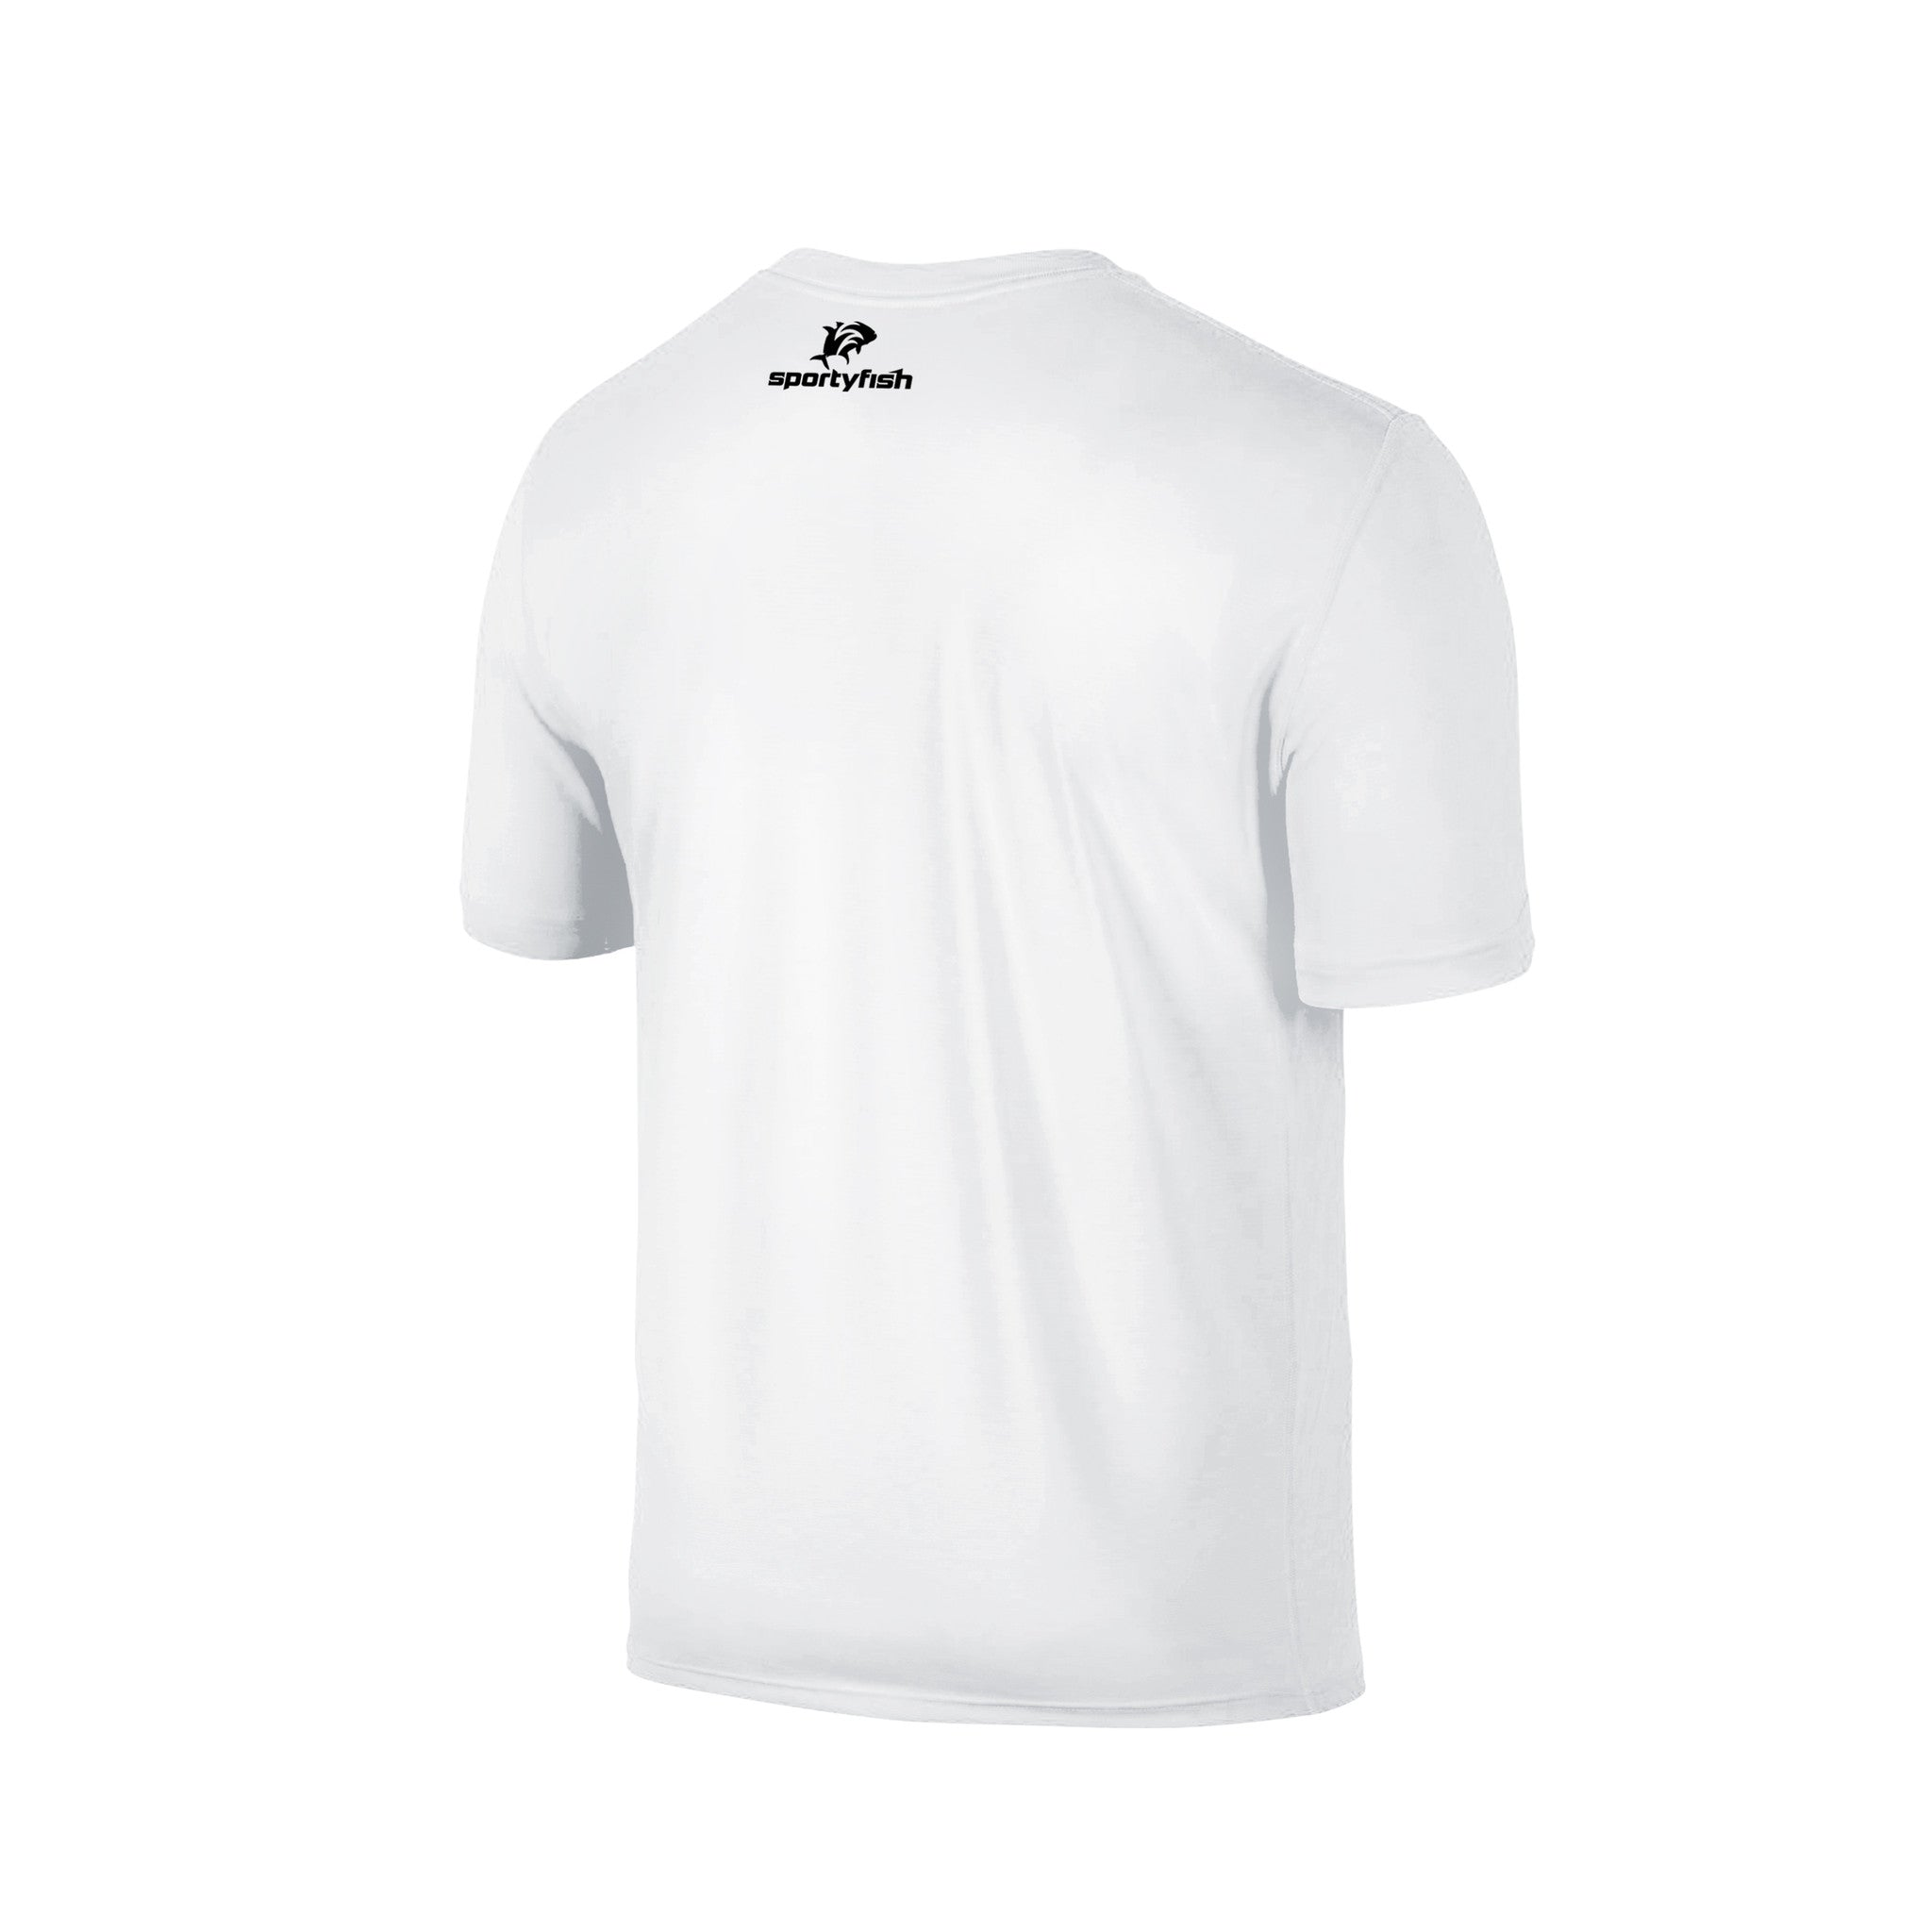 SportyFish Fury Series White T-shirt: Black Marlin back view